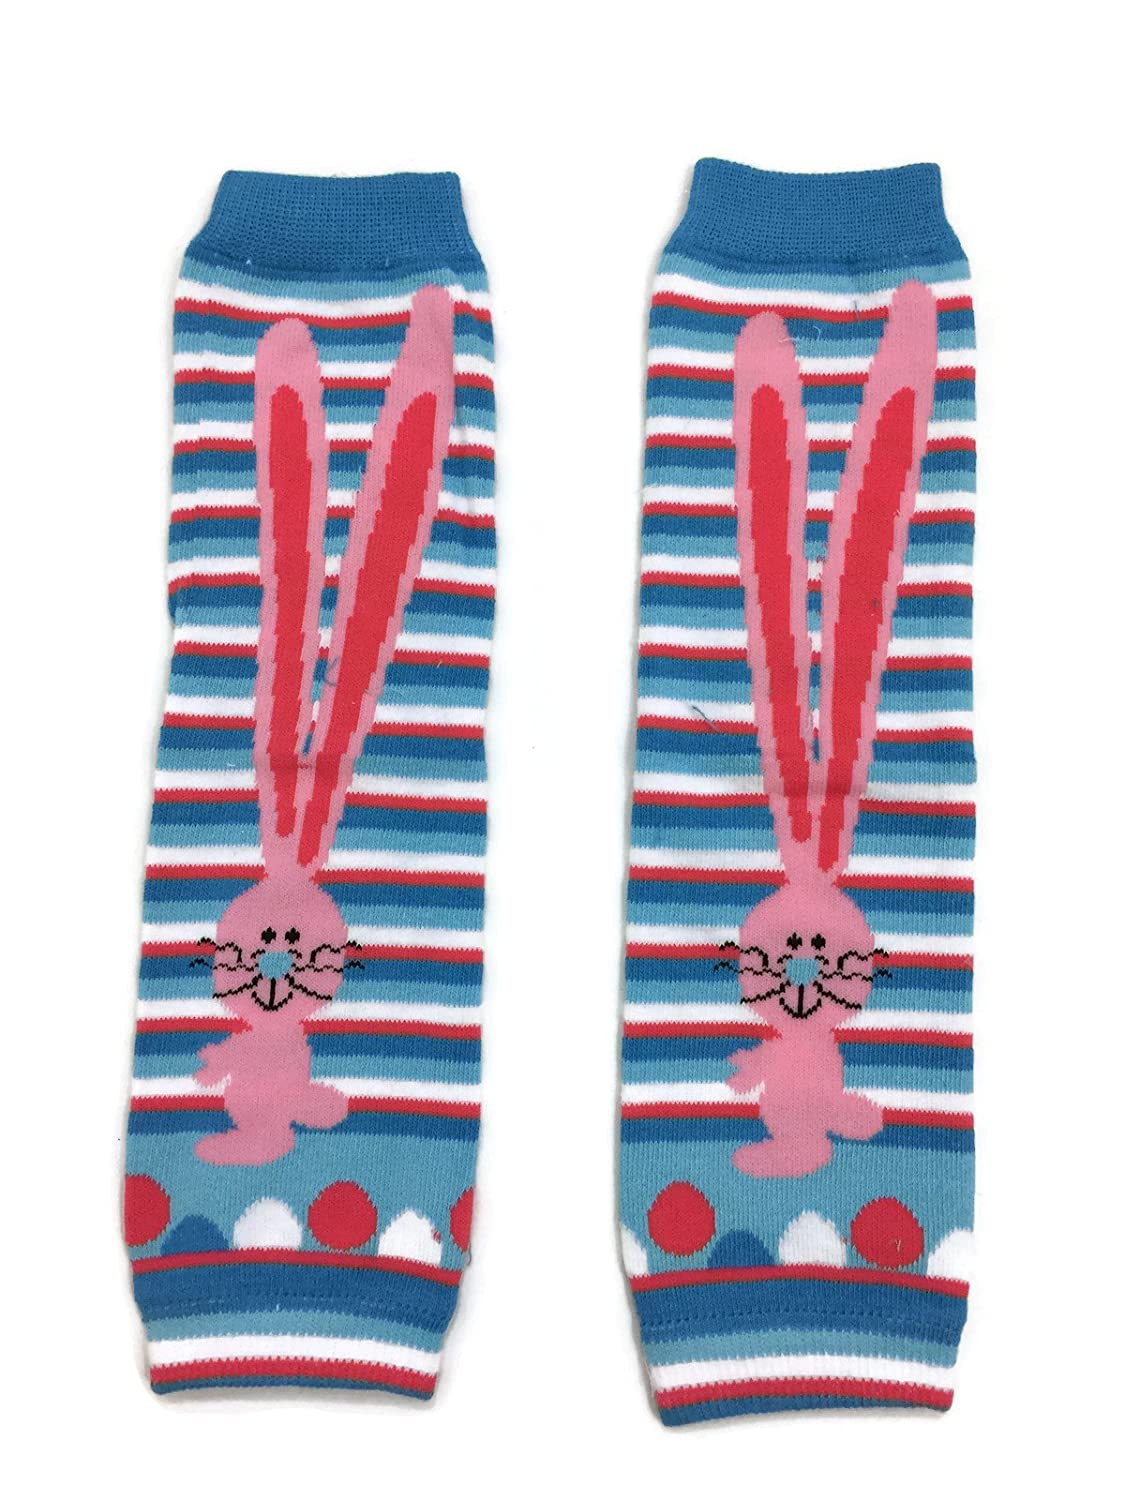 Rush Dance Long Ears Blue Easter Bunny Cute Colorful Baby//Toddler Leg Warmers